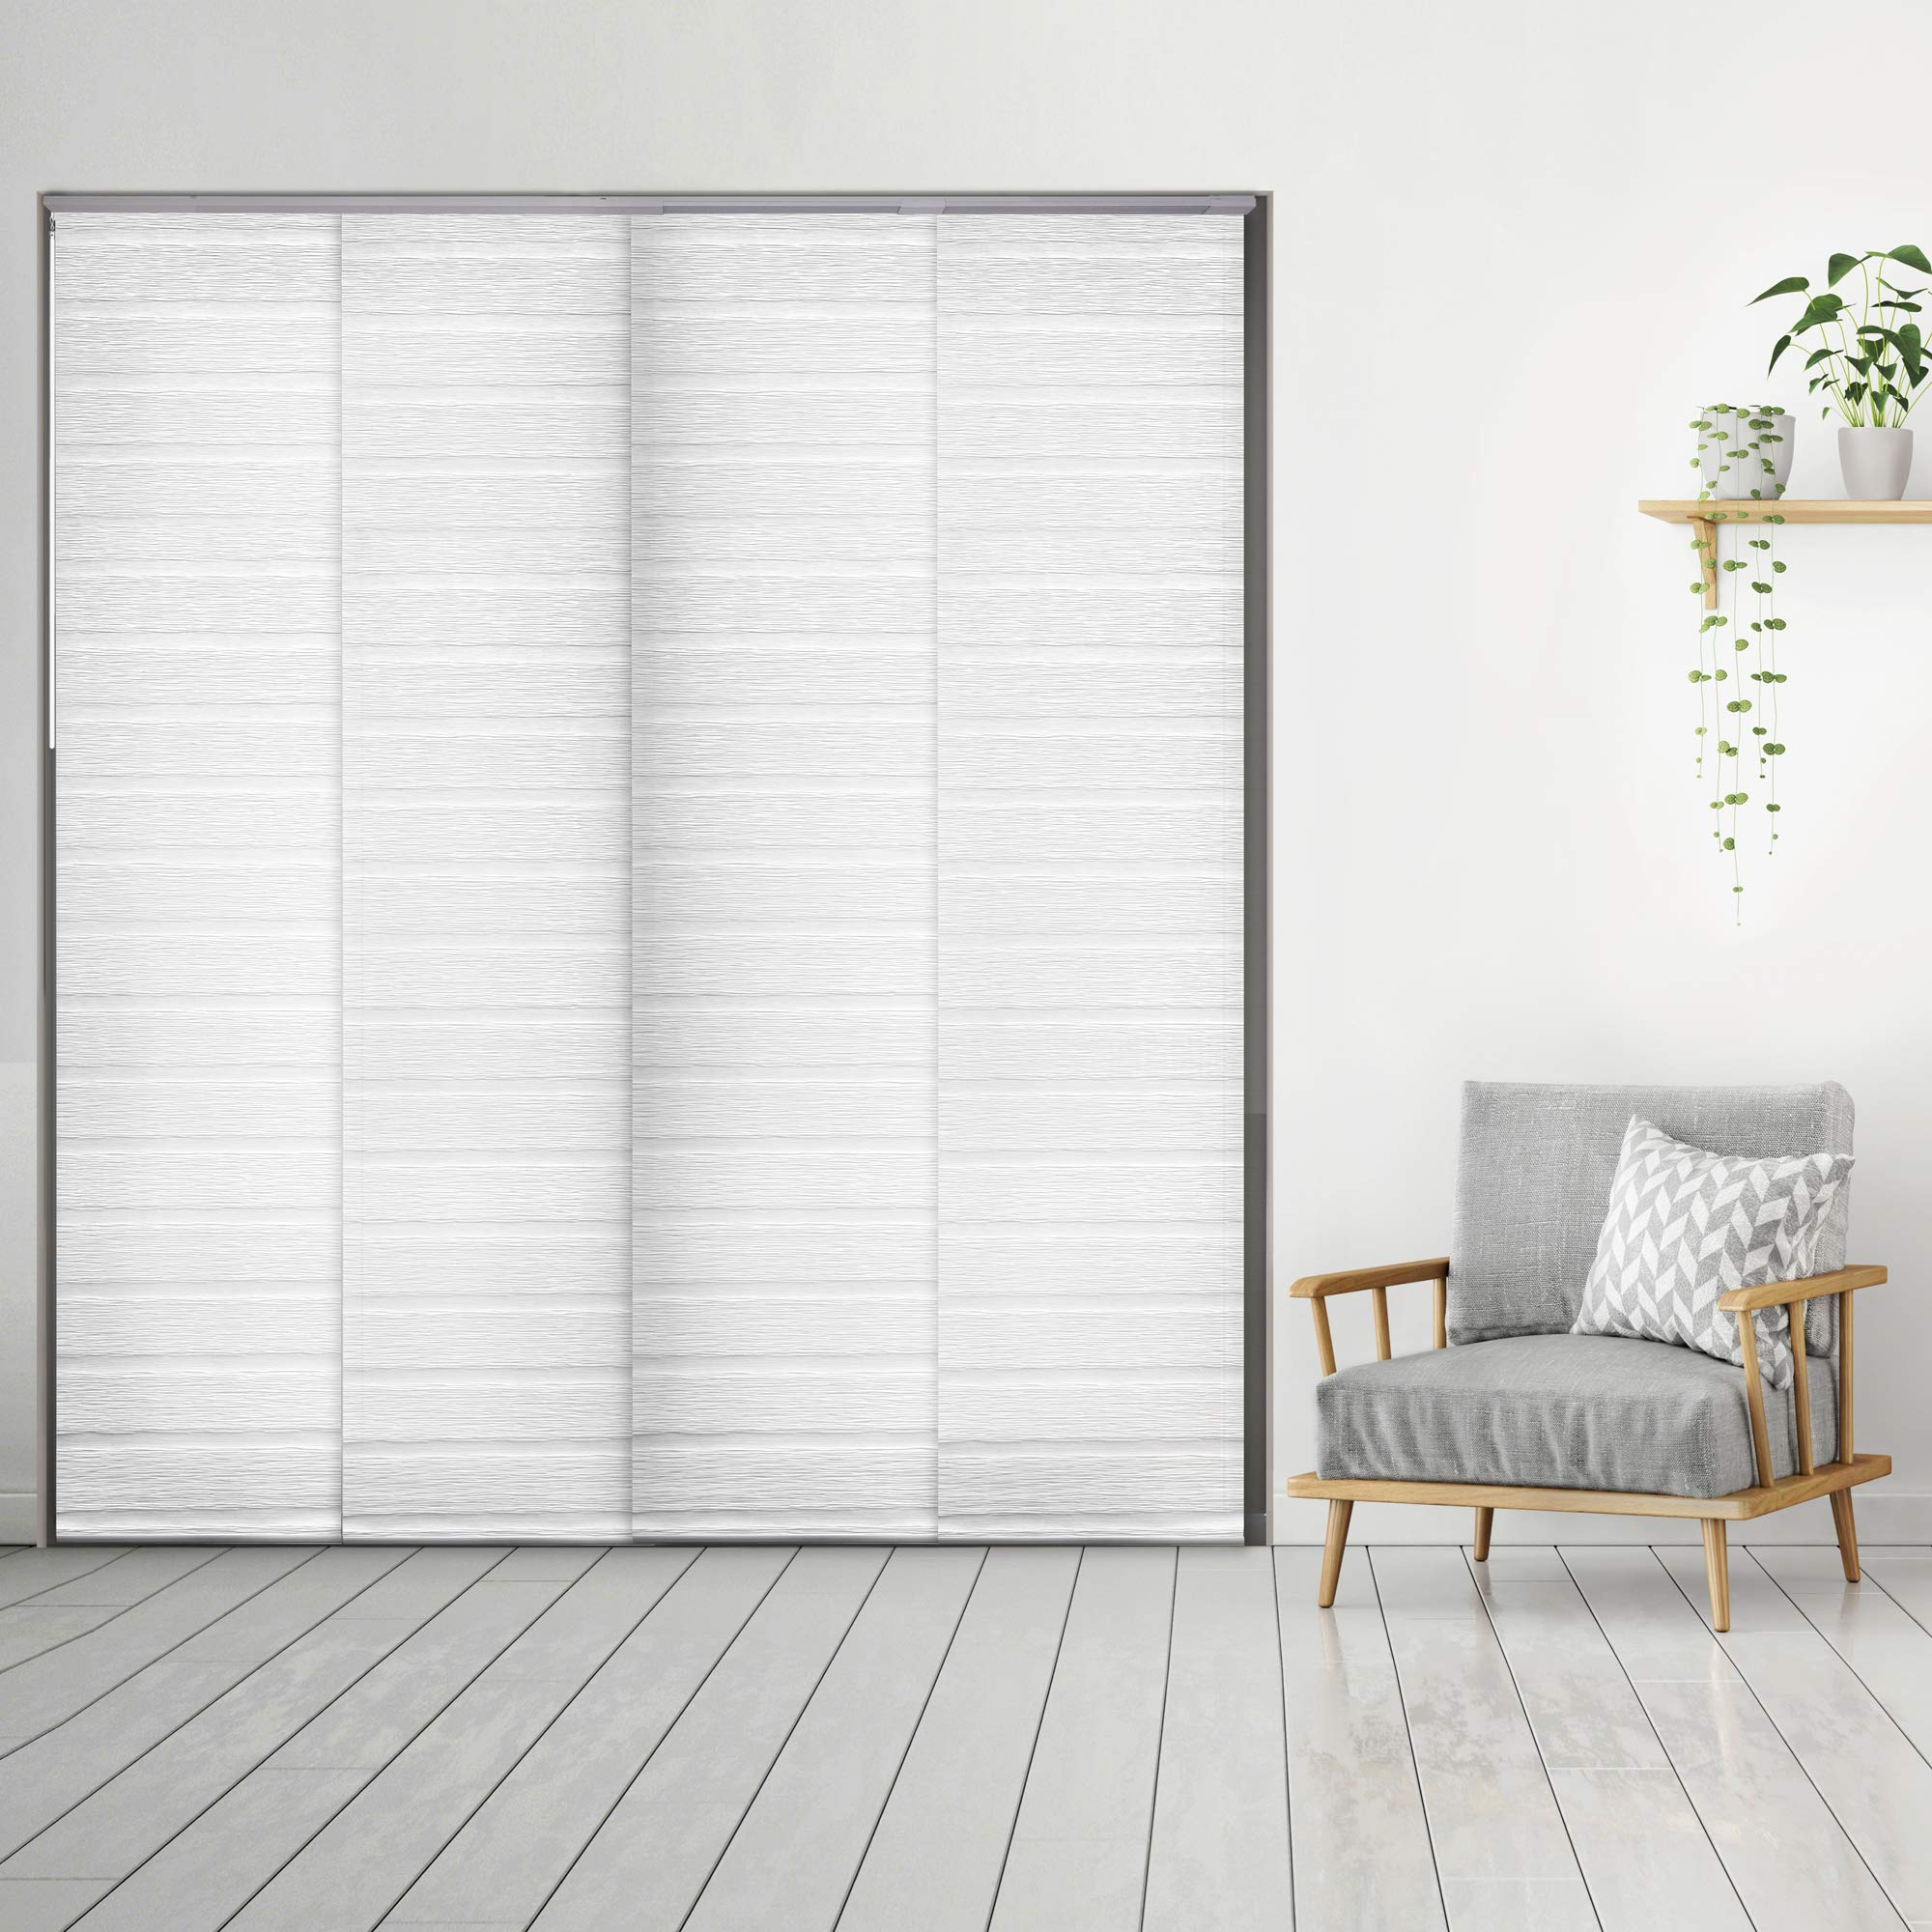 Godear Design Deluxe Adjustable Sliding Panel 45.8''-86'' x 96'', 4-Rail, Pleated Natural Woven Fabric, Swan by Godear Design